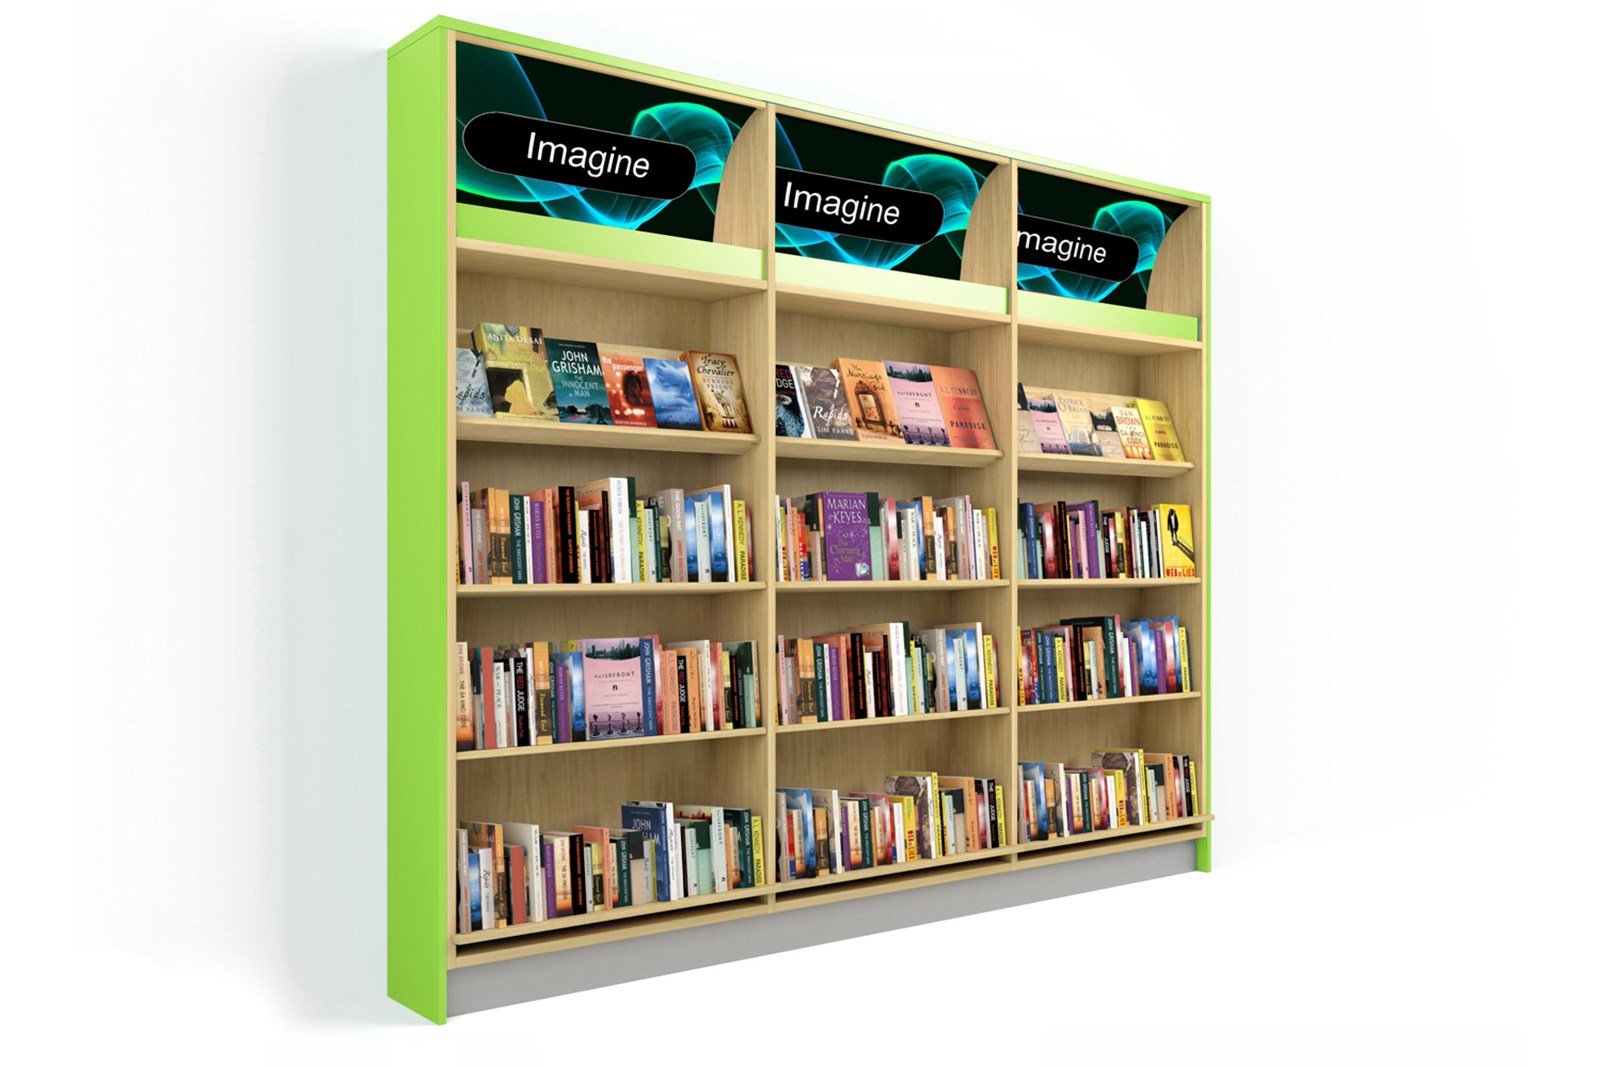 Shelving fitted with LED lights to illuminate the customized graphic